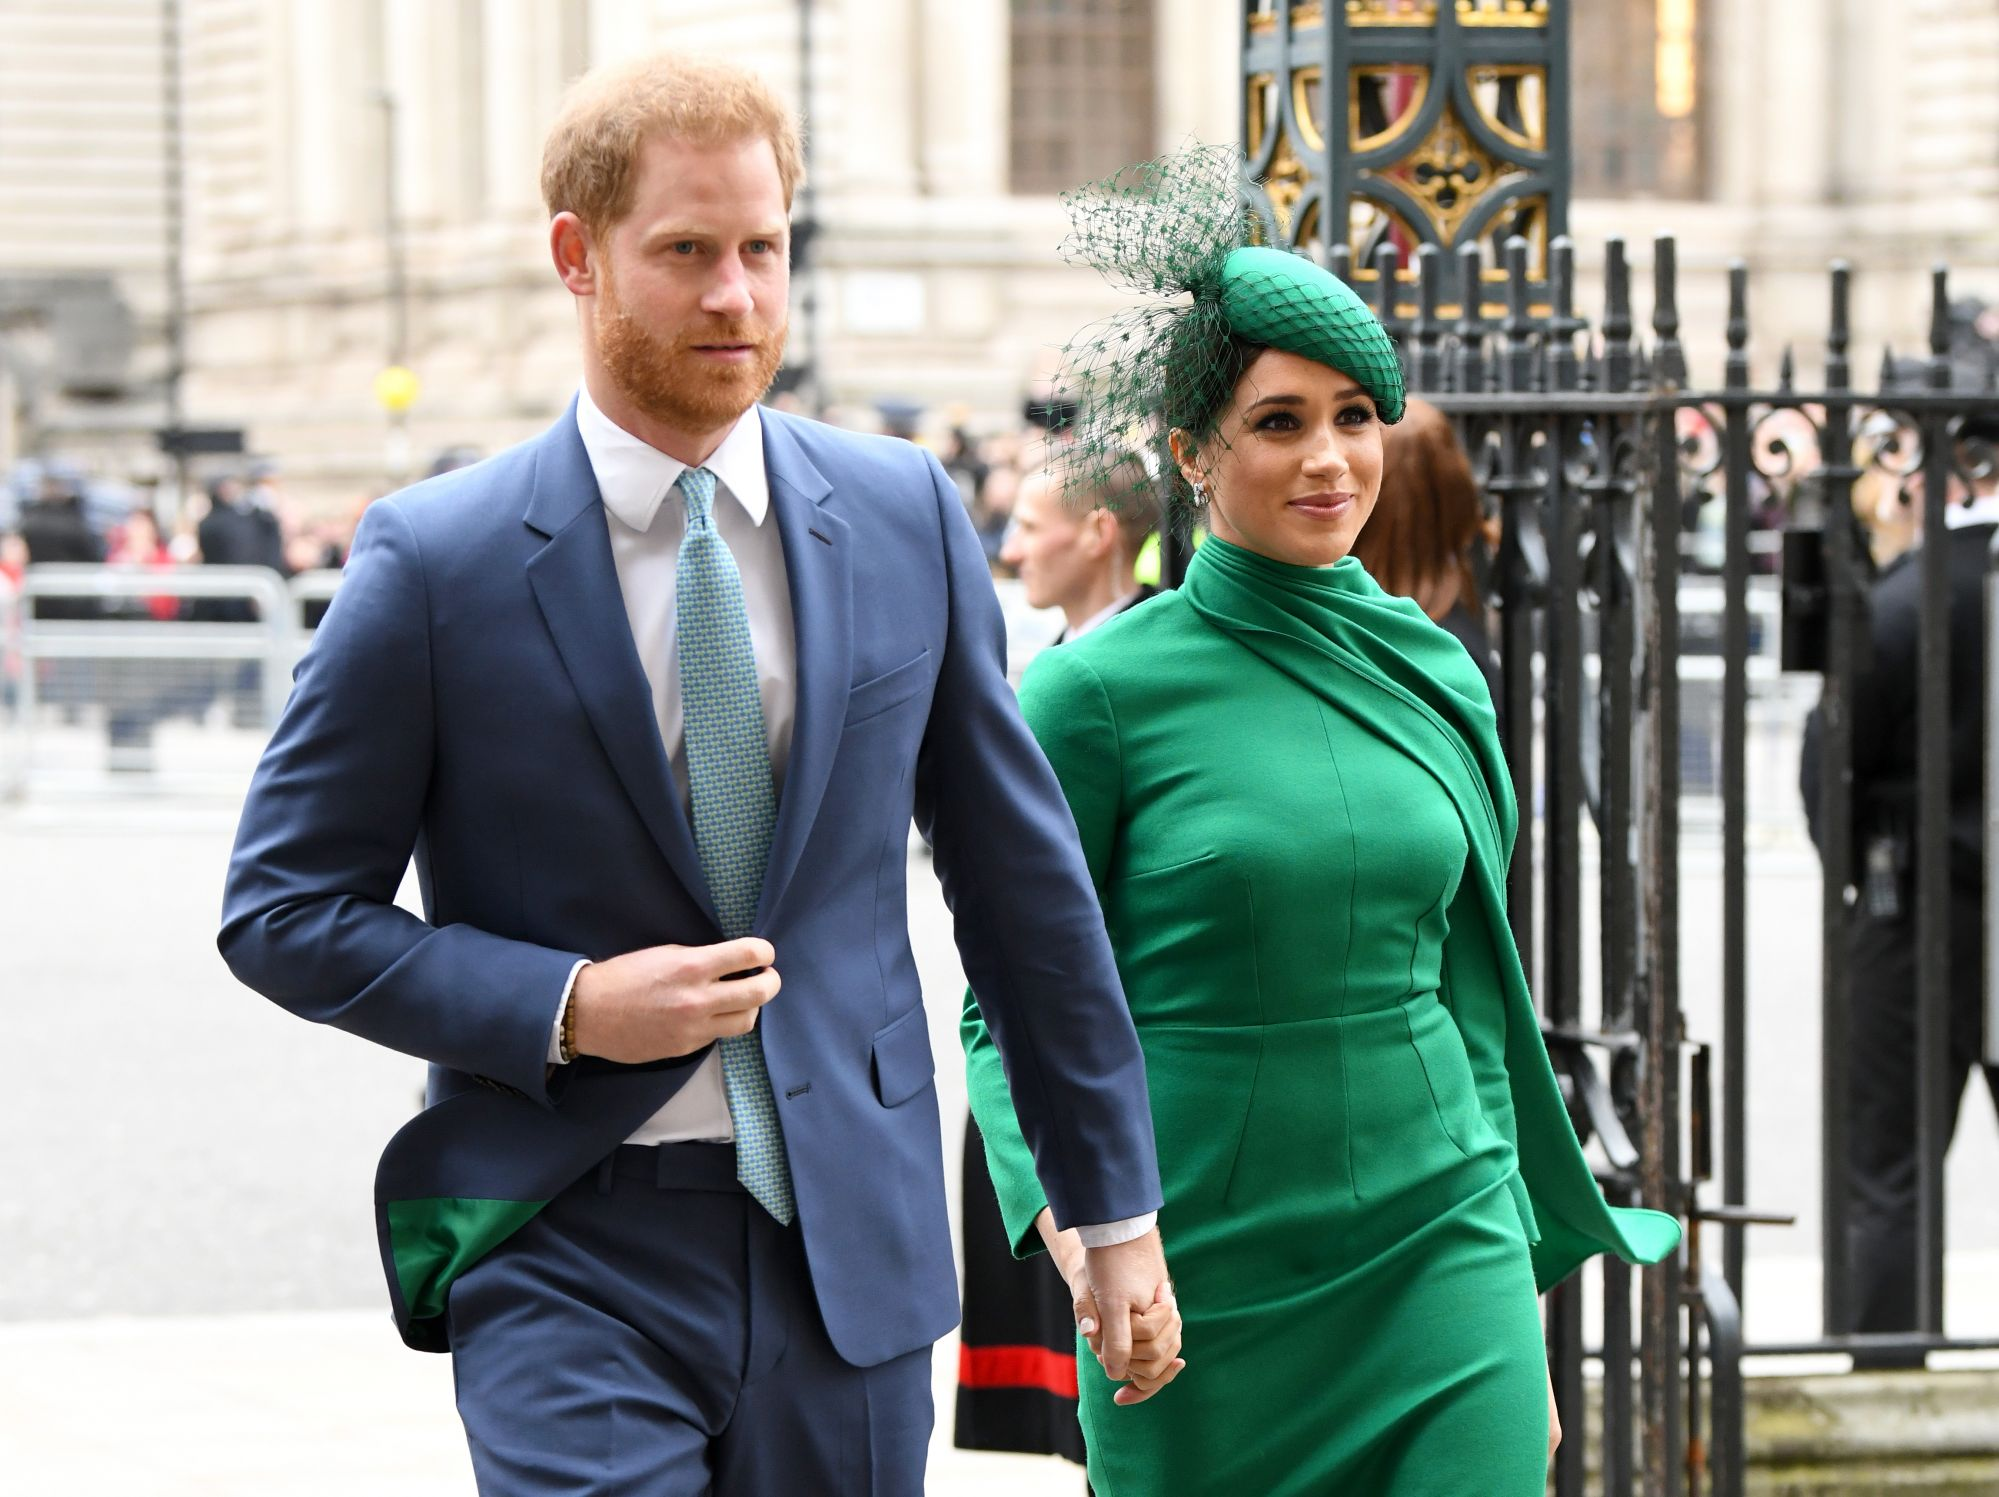 Prince Harry And Meghan Markle Make Last Appearance As Senior Royals